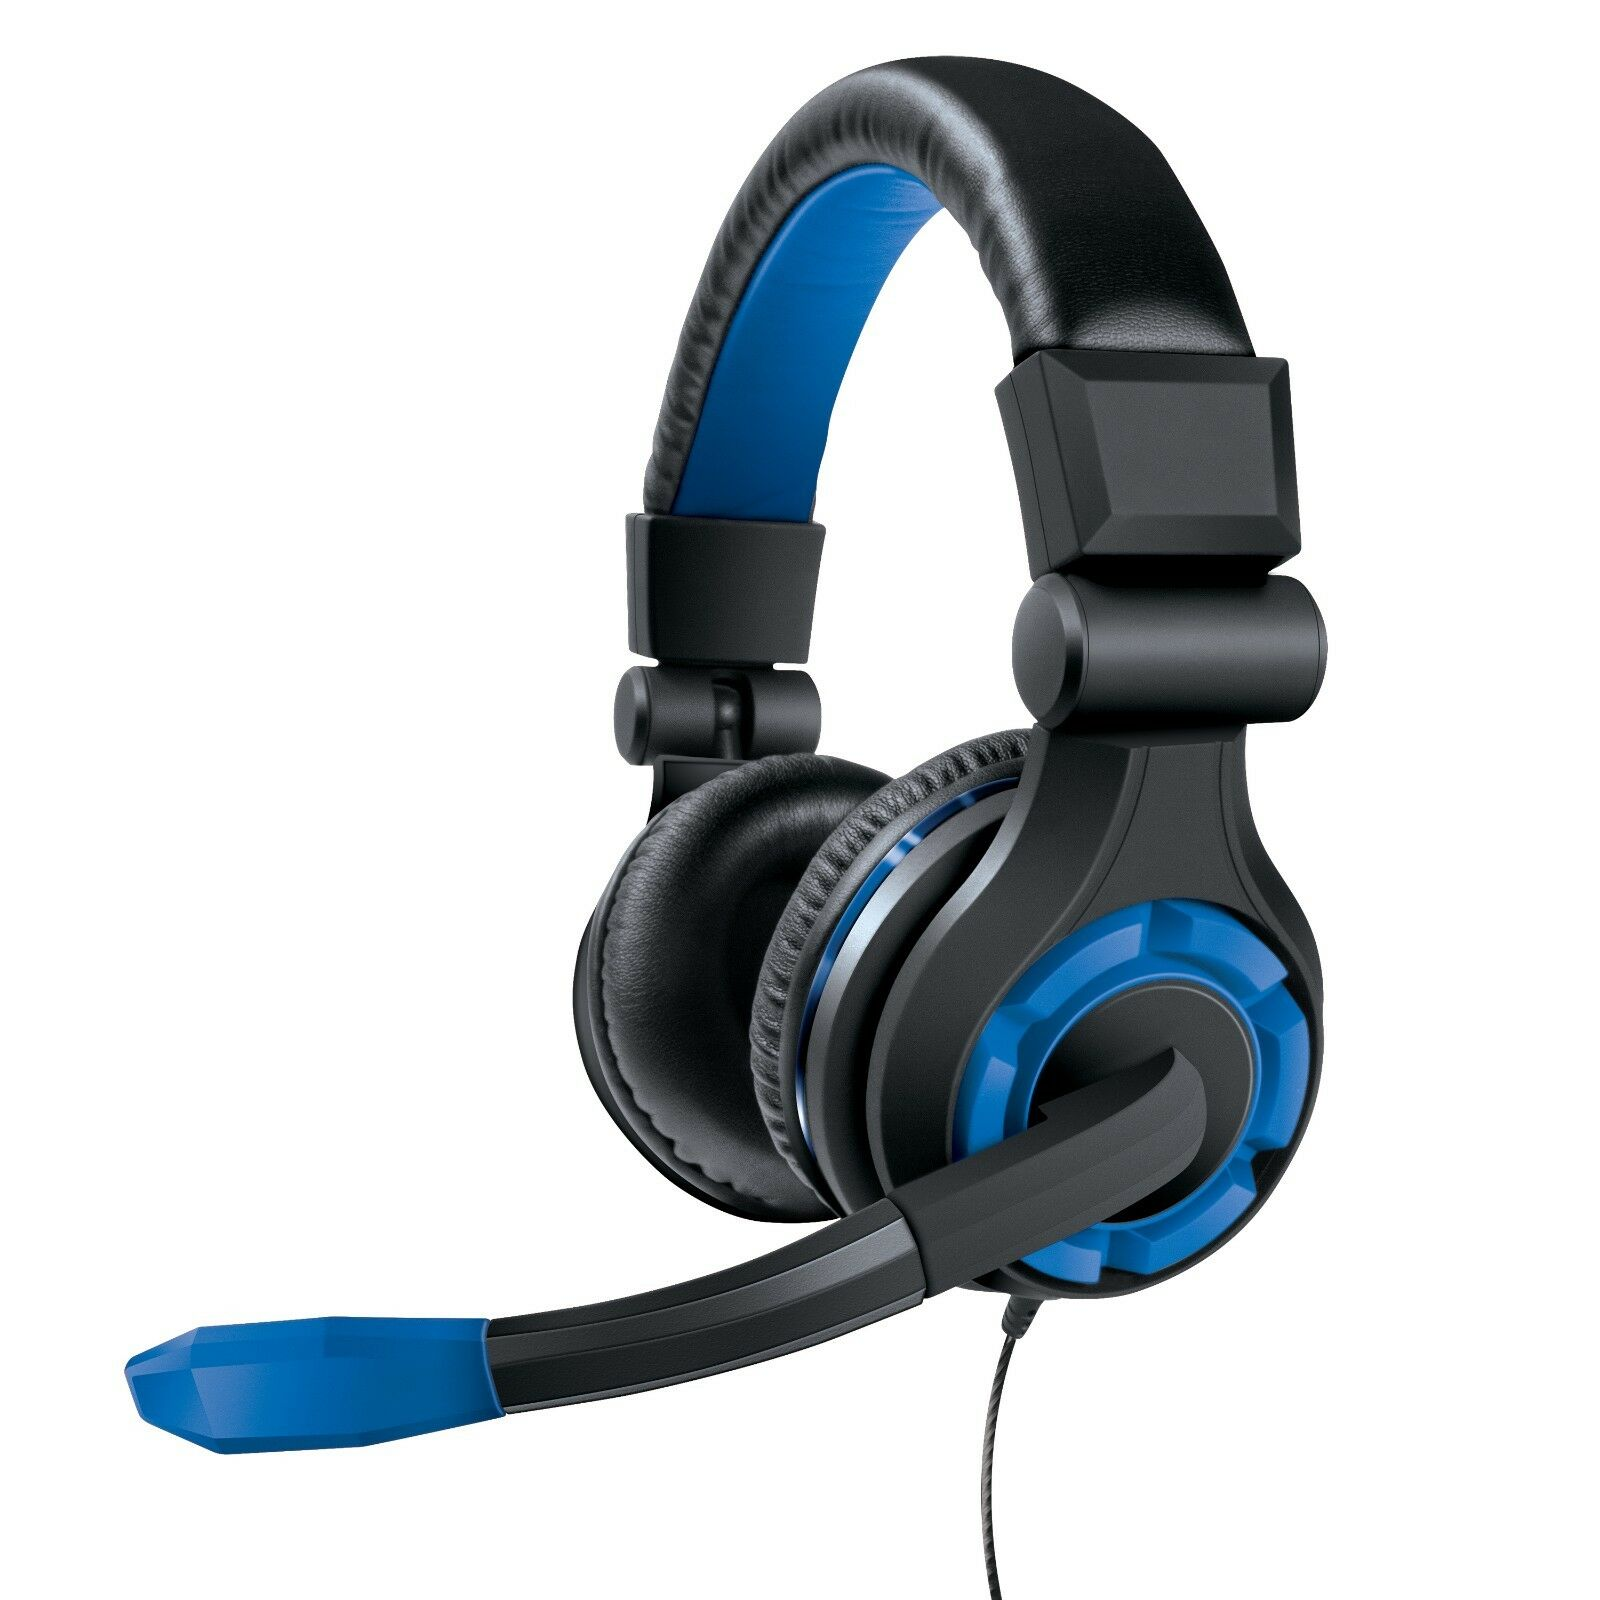 DreamGEAR GRX 340 Advanced Wired Gaming Headset Headphone For Xbox One PS4 EBay